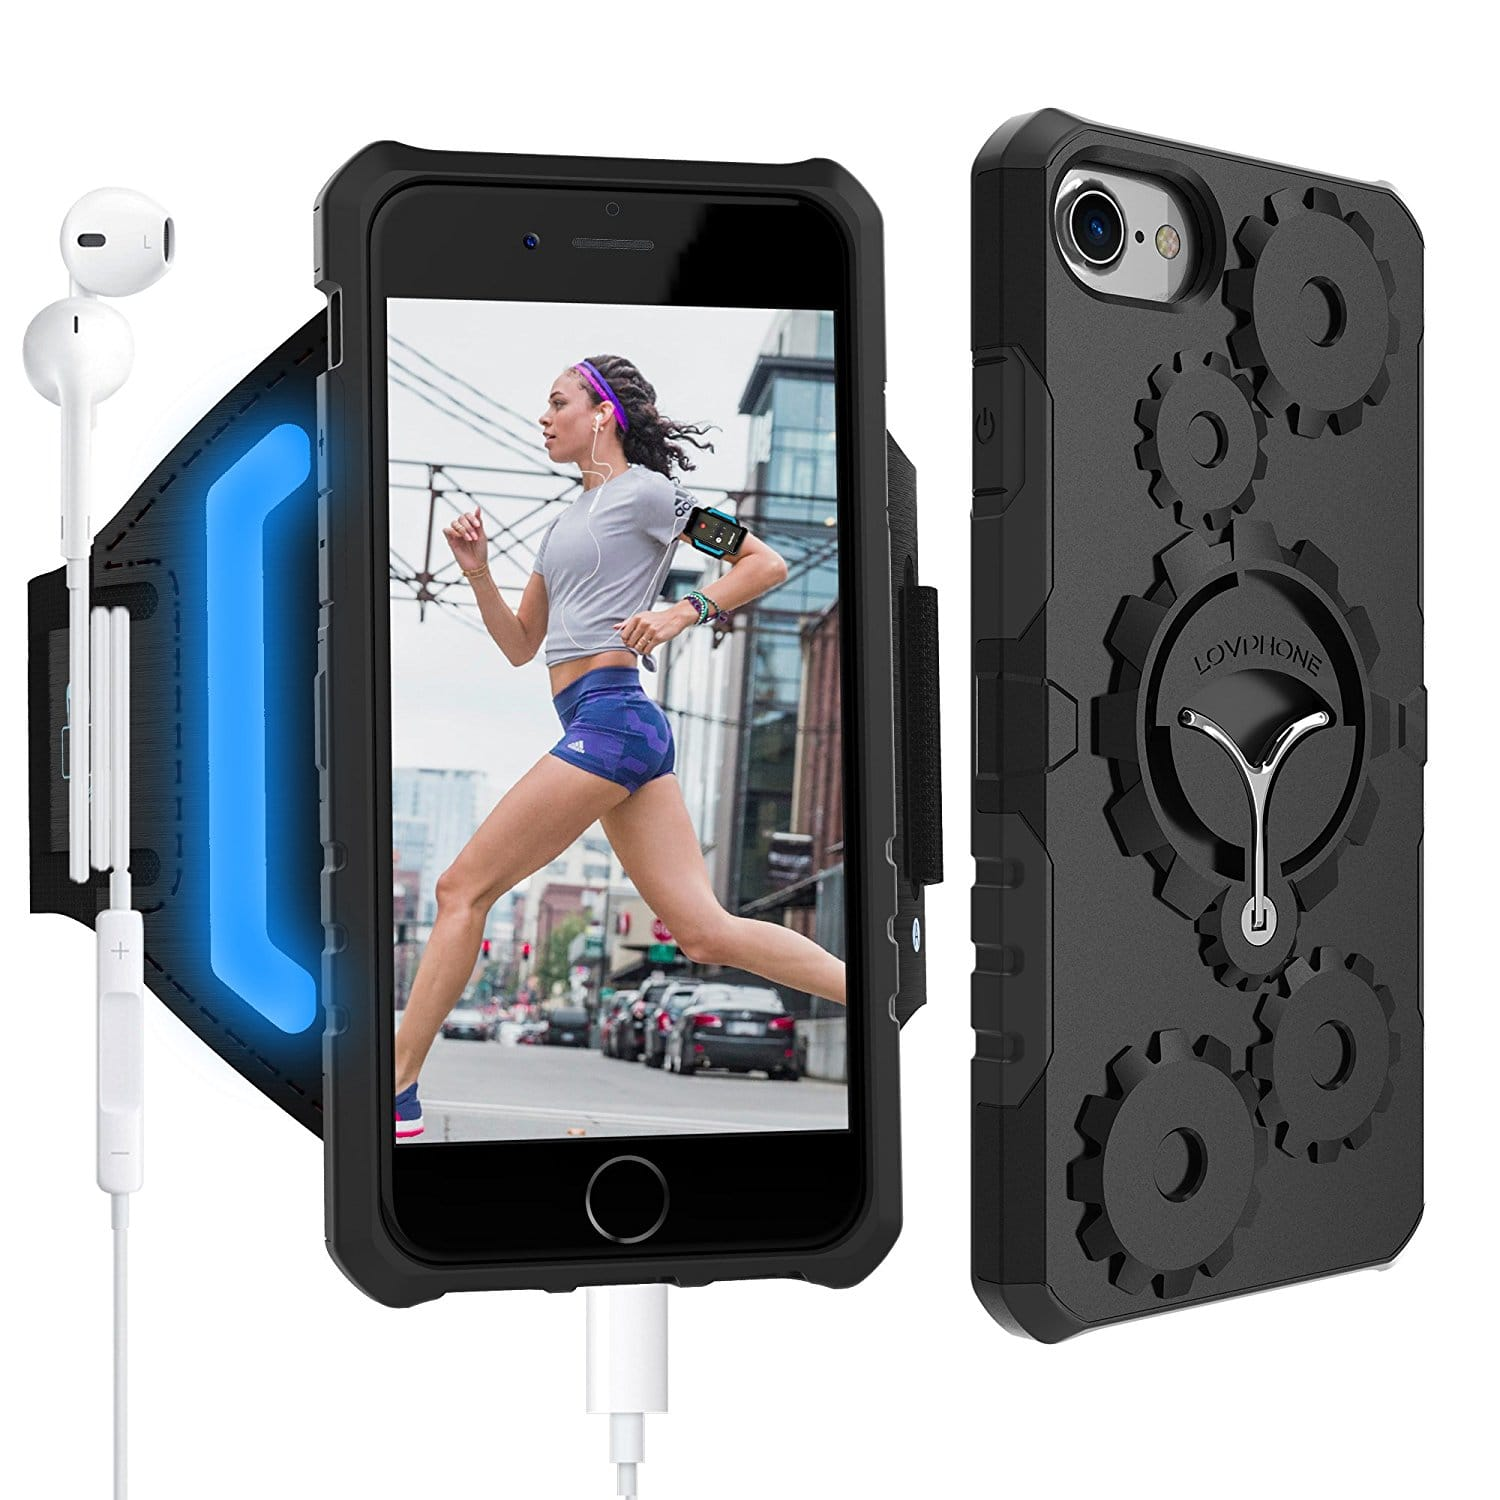 Armband & Armour Case Set - LOVPHONE Sport Running Armband + with Key Holder Kickstand for iPhone 6/6S/7/7 Plus AC on Amazon FS w/Prime $9.89